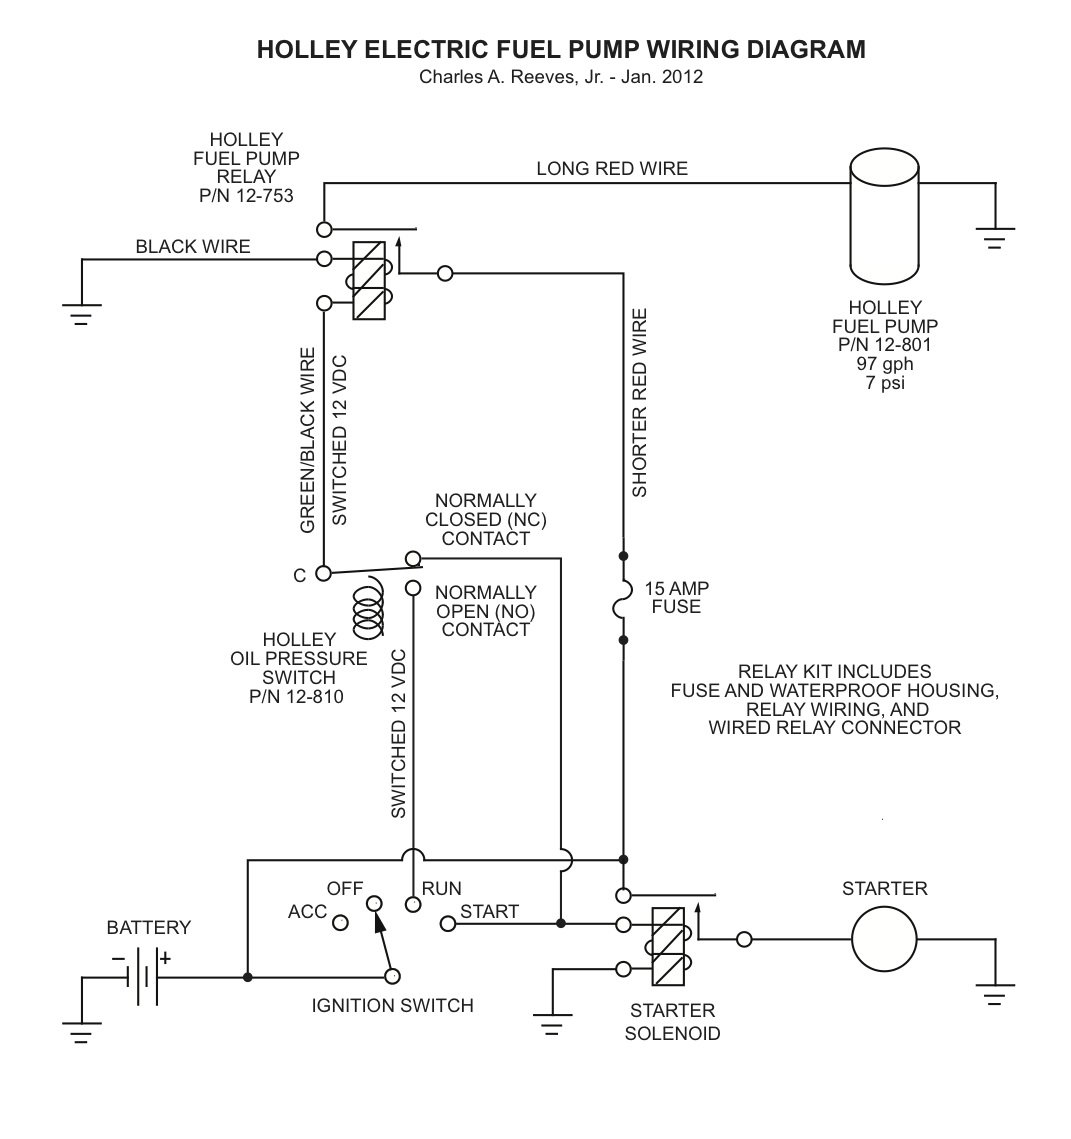 146291d1325616423 installing holley electric fuel pump 1966 mustang elect fuel pump wiring diagram installing a holley electric fuel pump in a 1966 mustang ford electric fuel pump relay wiring at soozxer.org